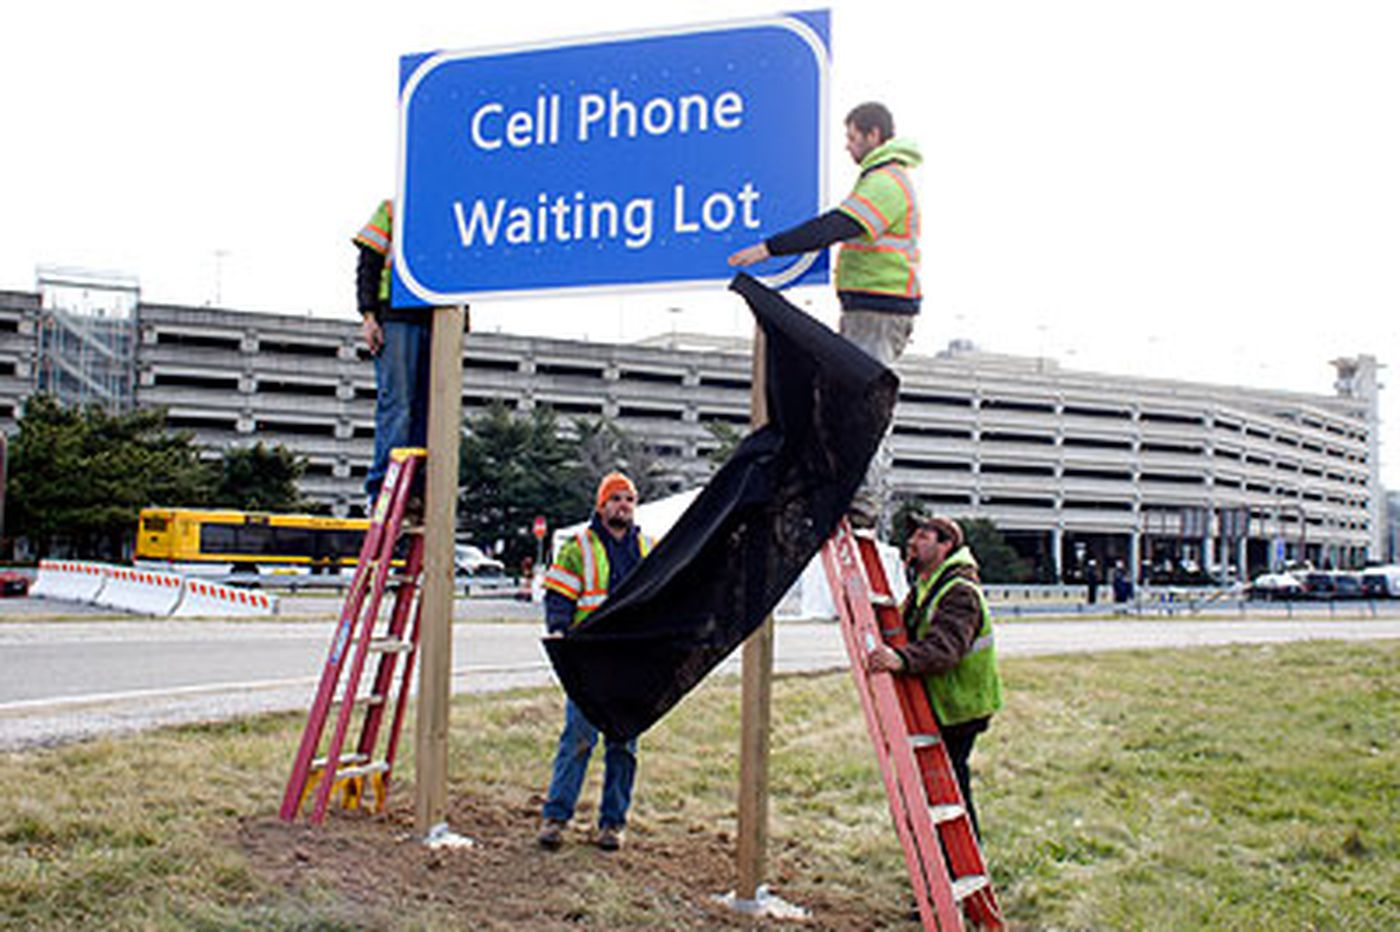 Airport gets new CEO and cell-phone lot